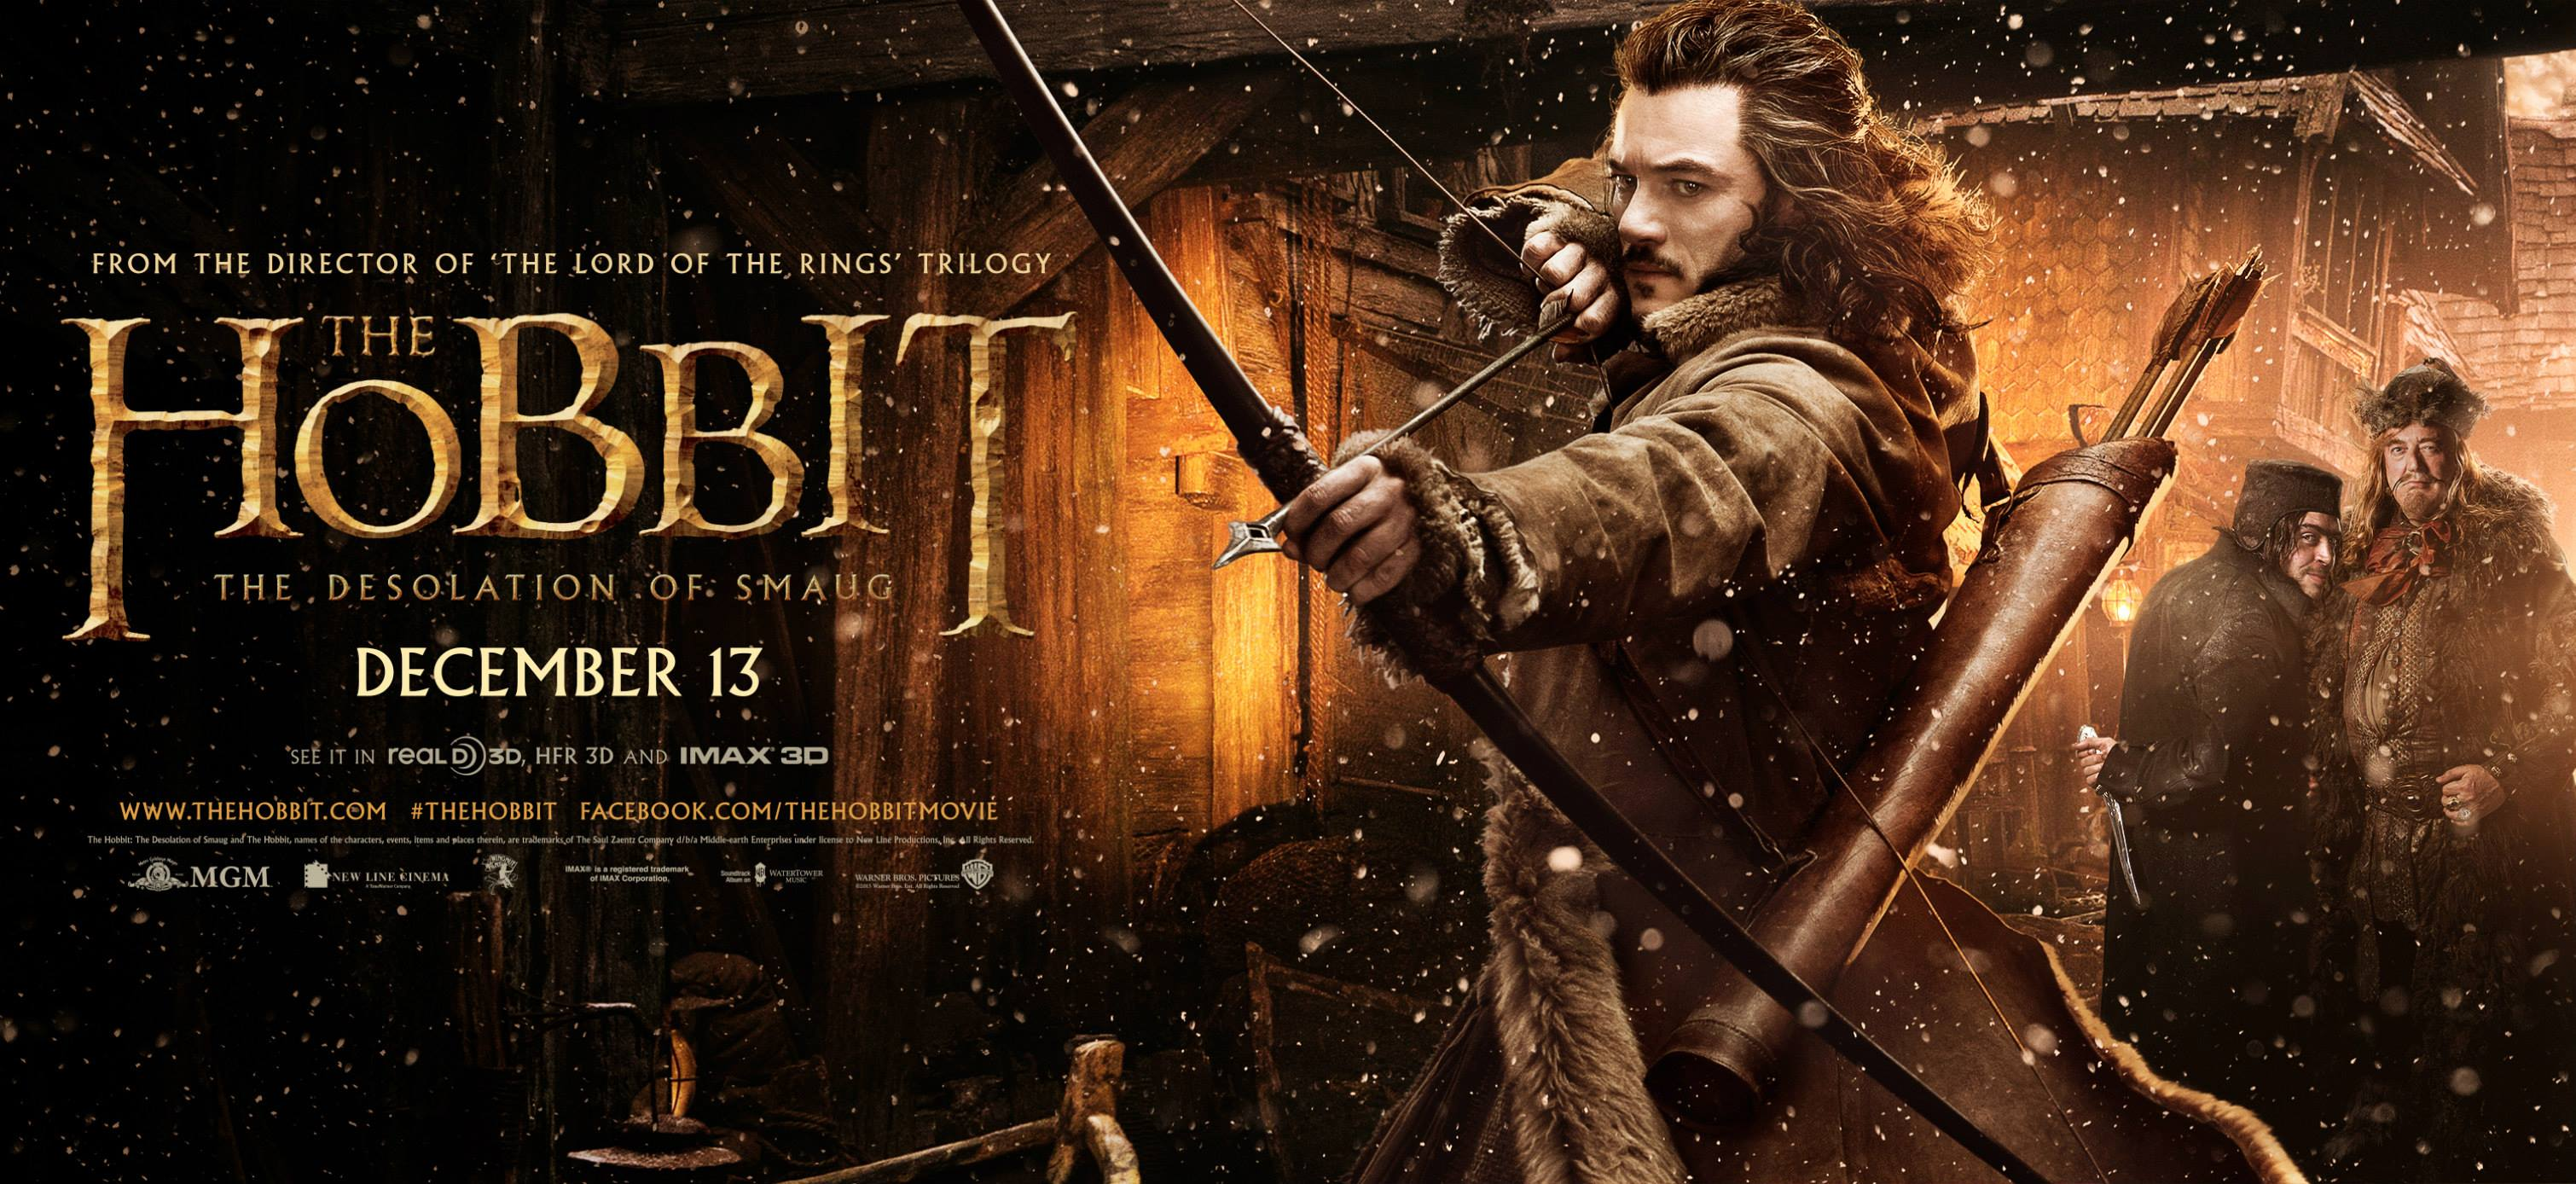 The Desolation of Smaug Bard the Bowman Movie Poster